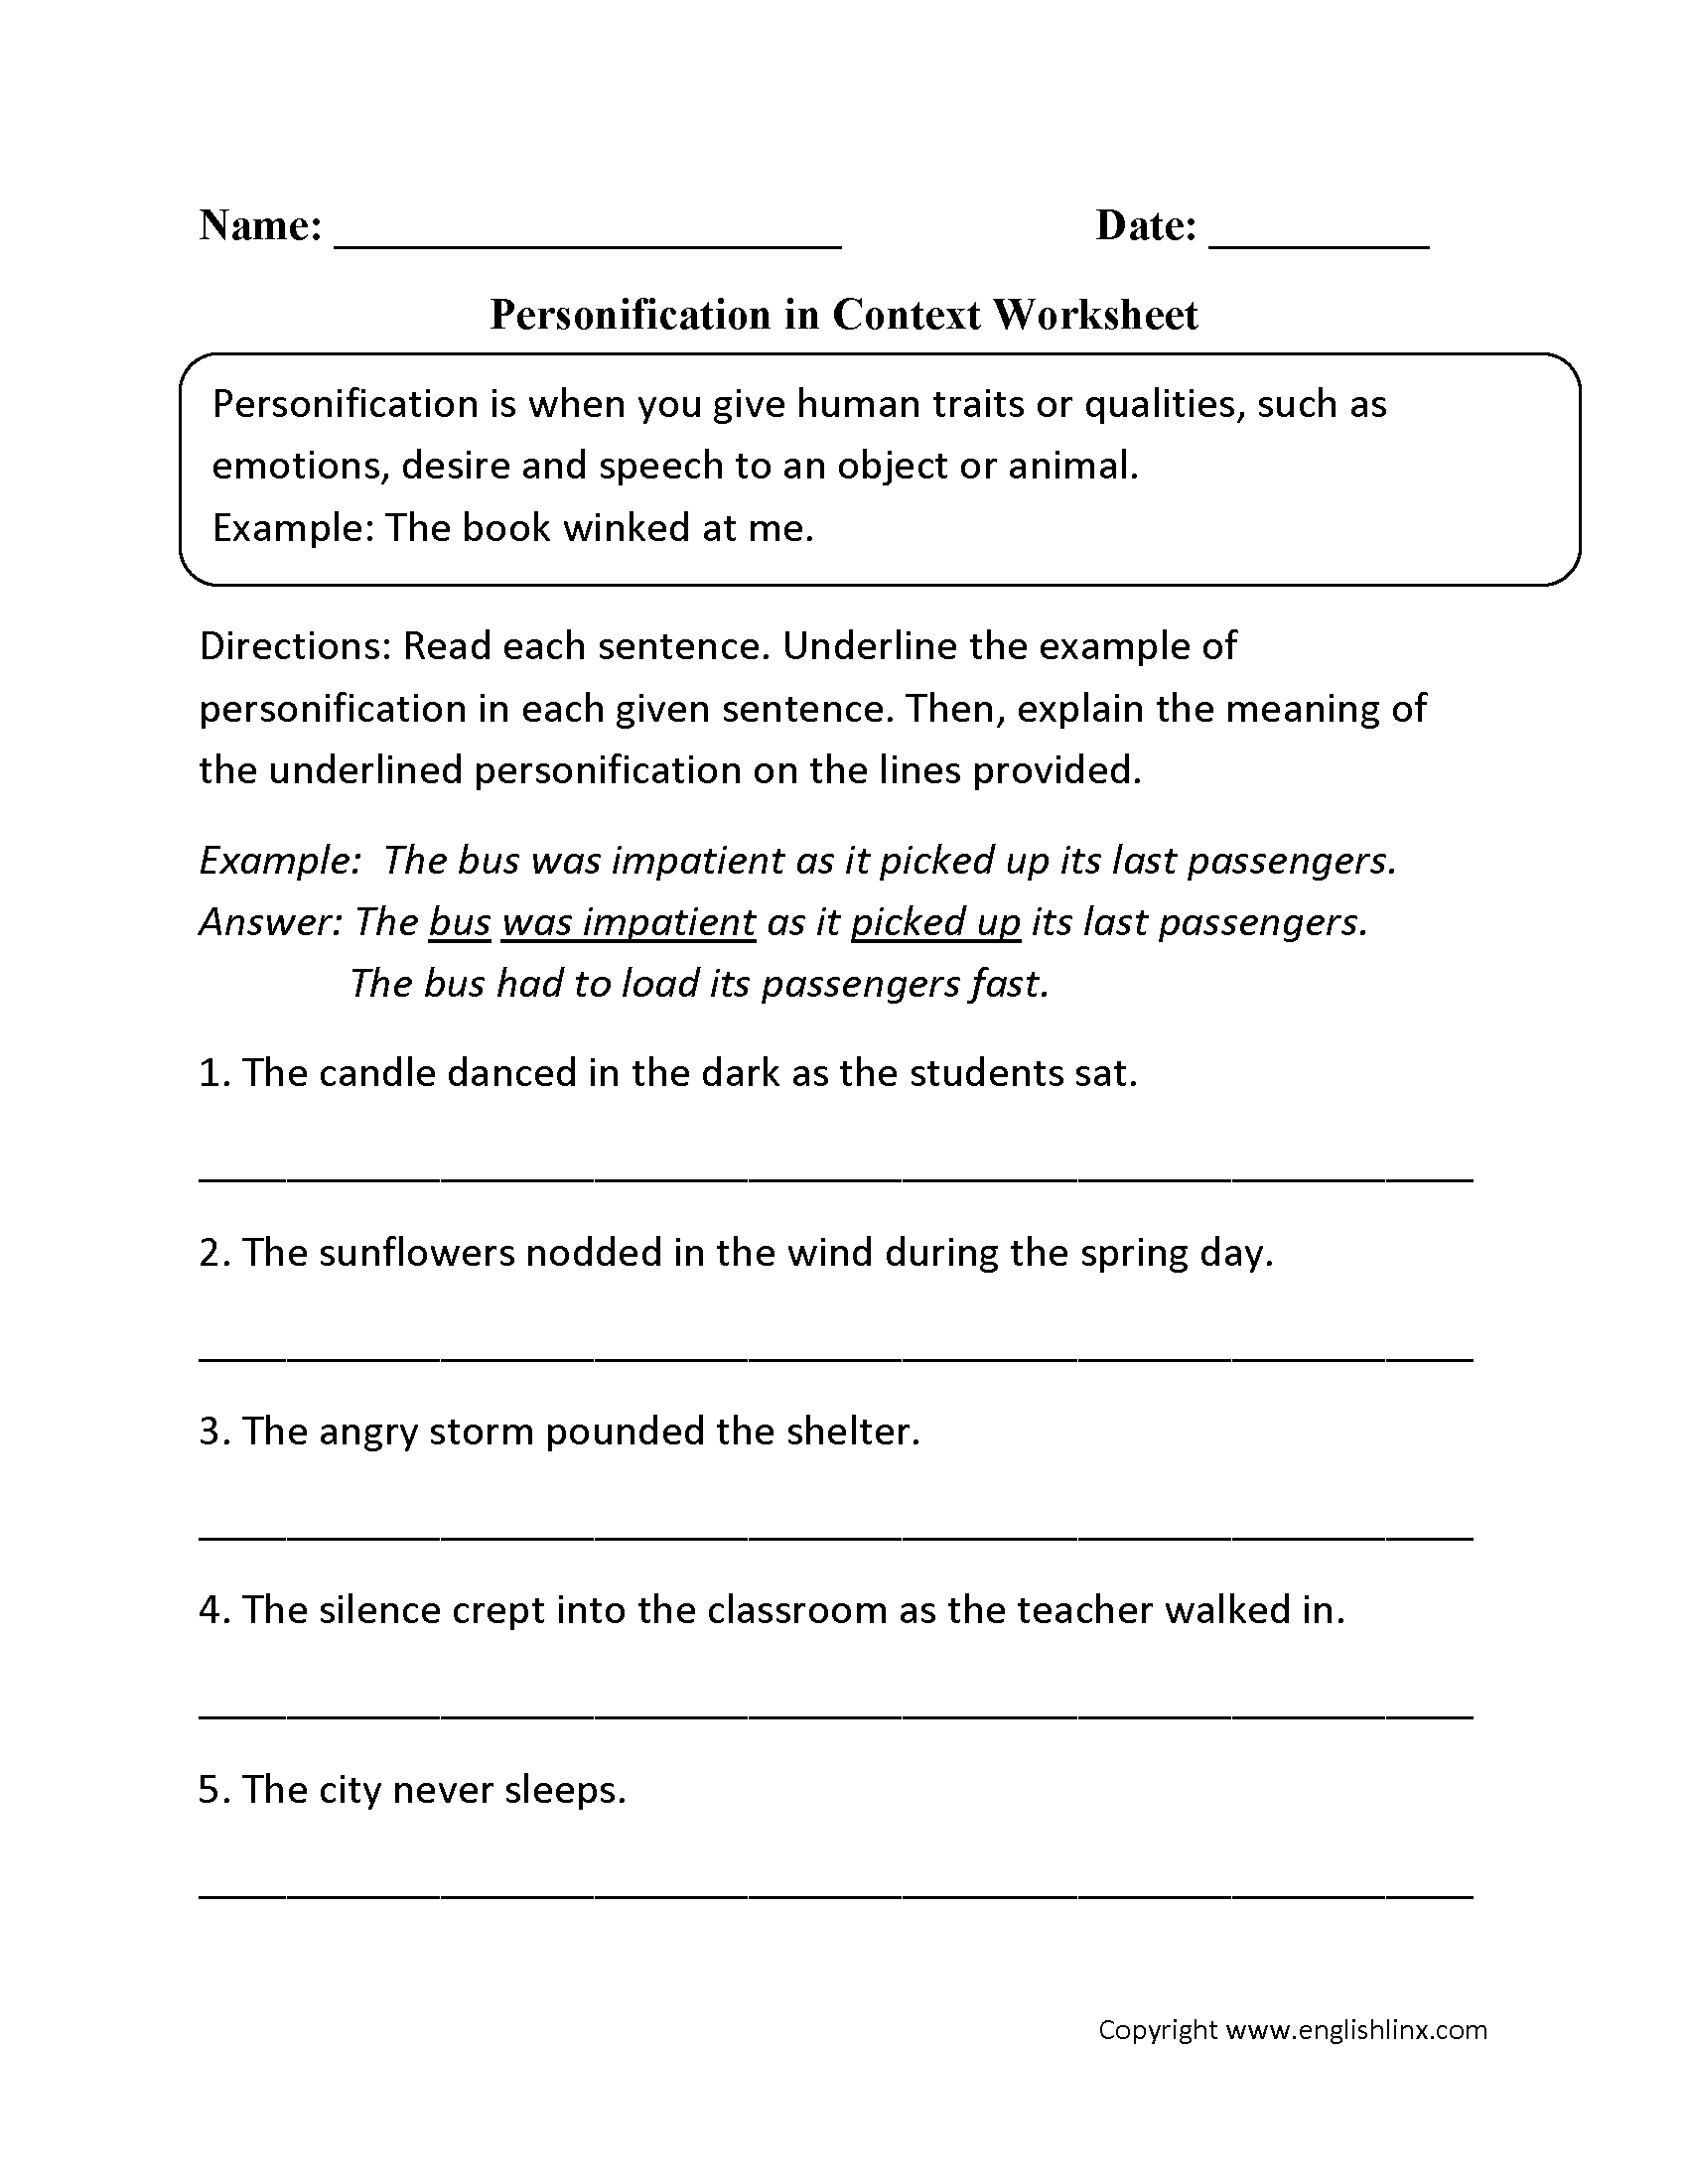 Worksheet Personification Worksheets figurative language worksheets personification in context worksheet